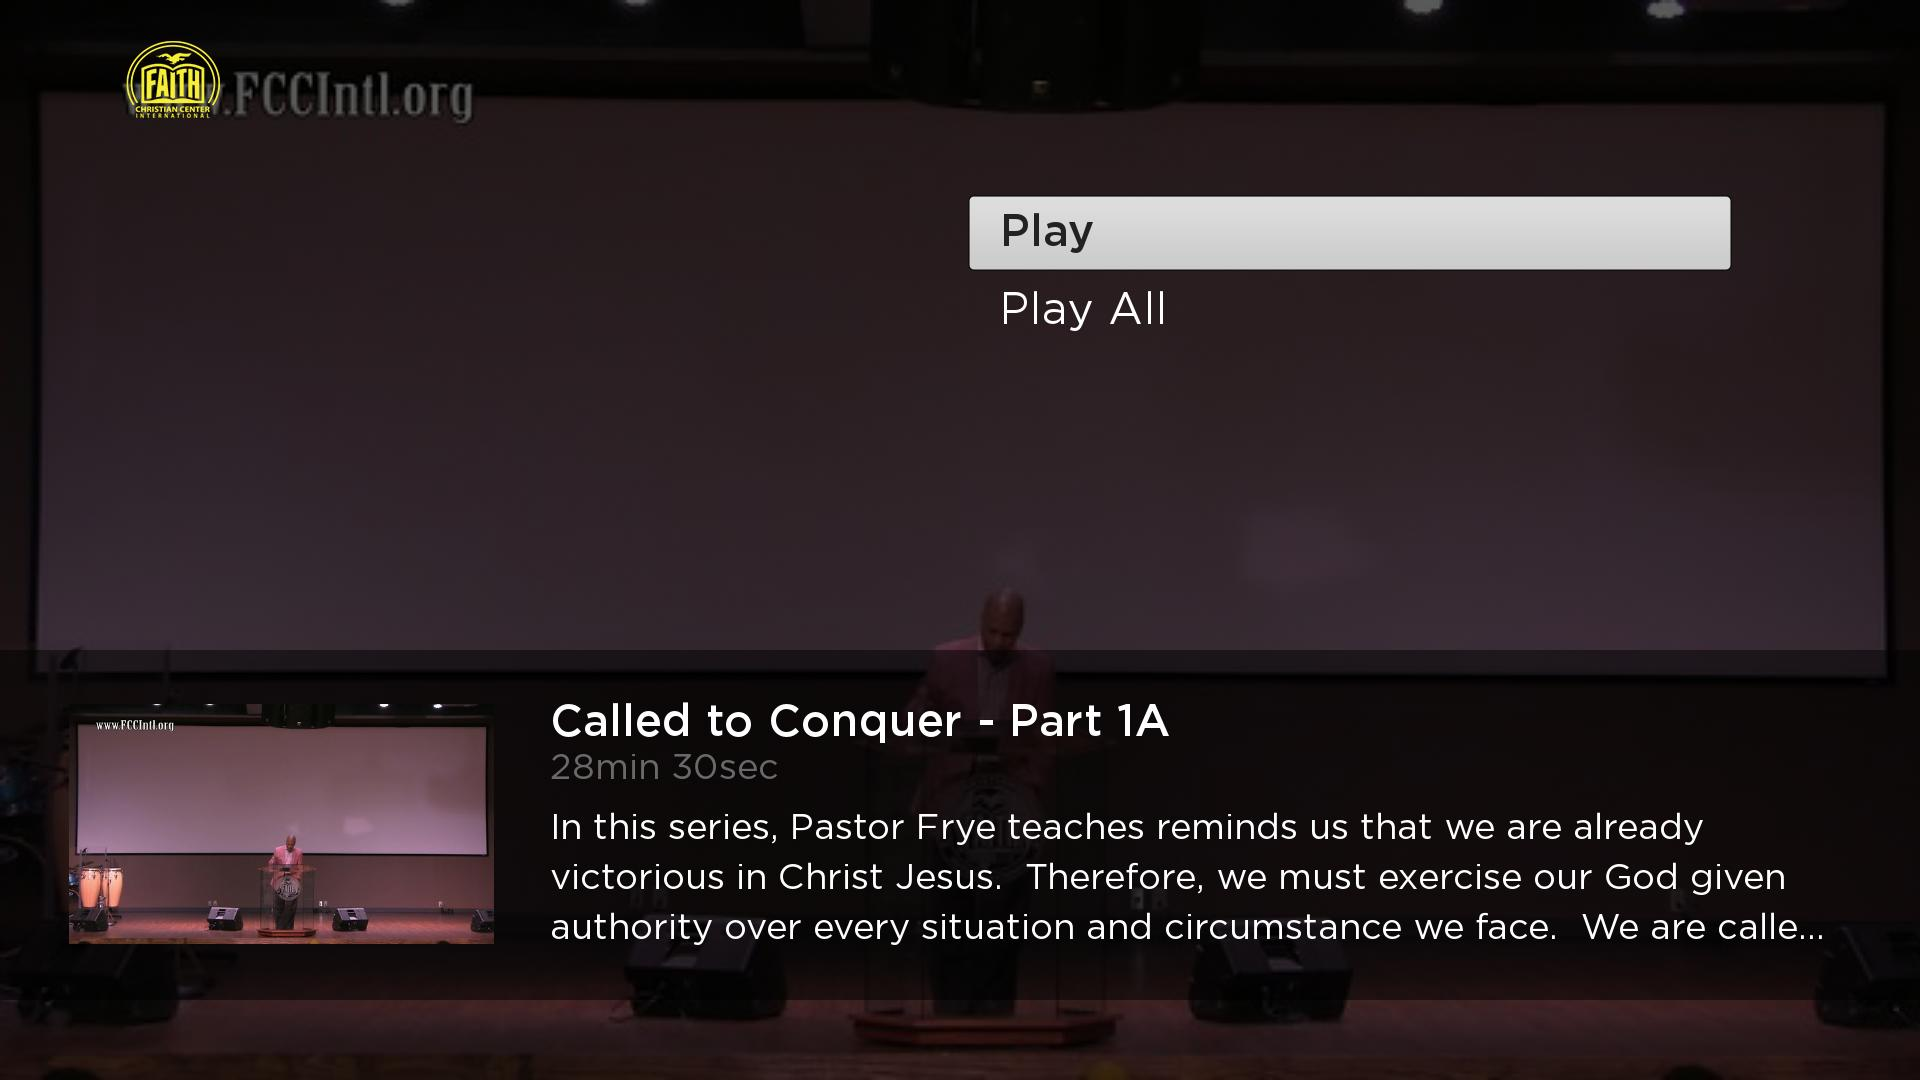 The Life of Faith Broadcast Screenshot 003